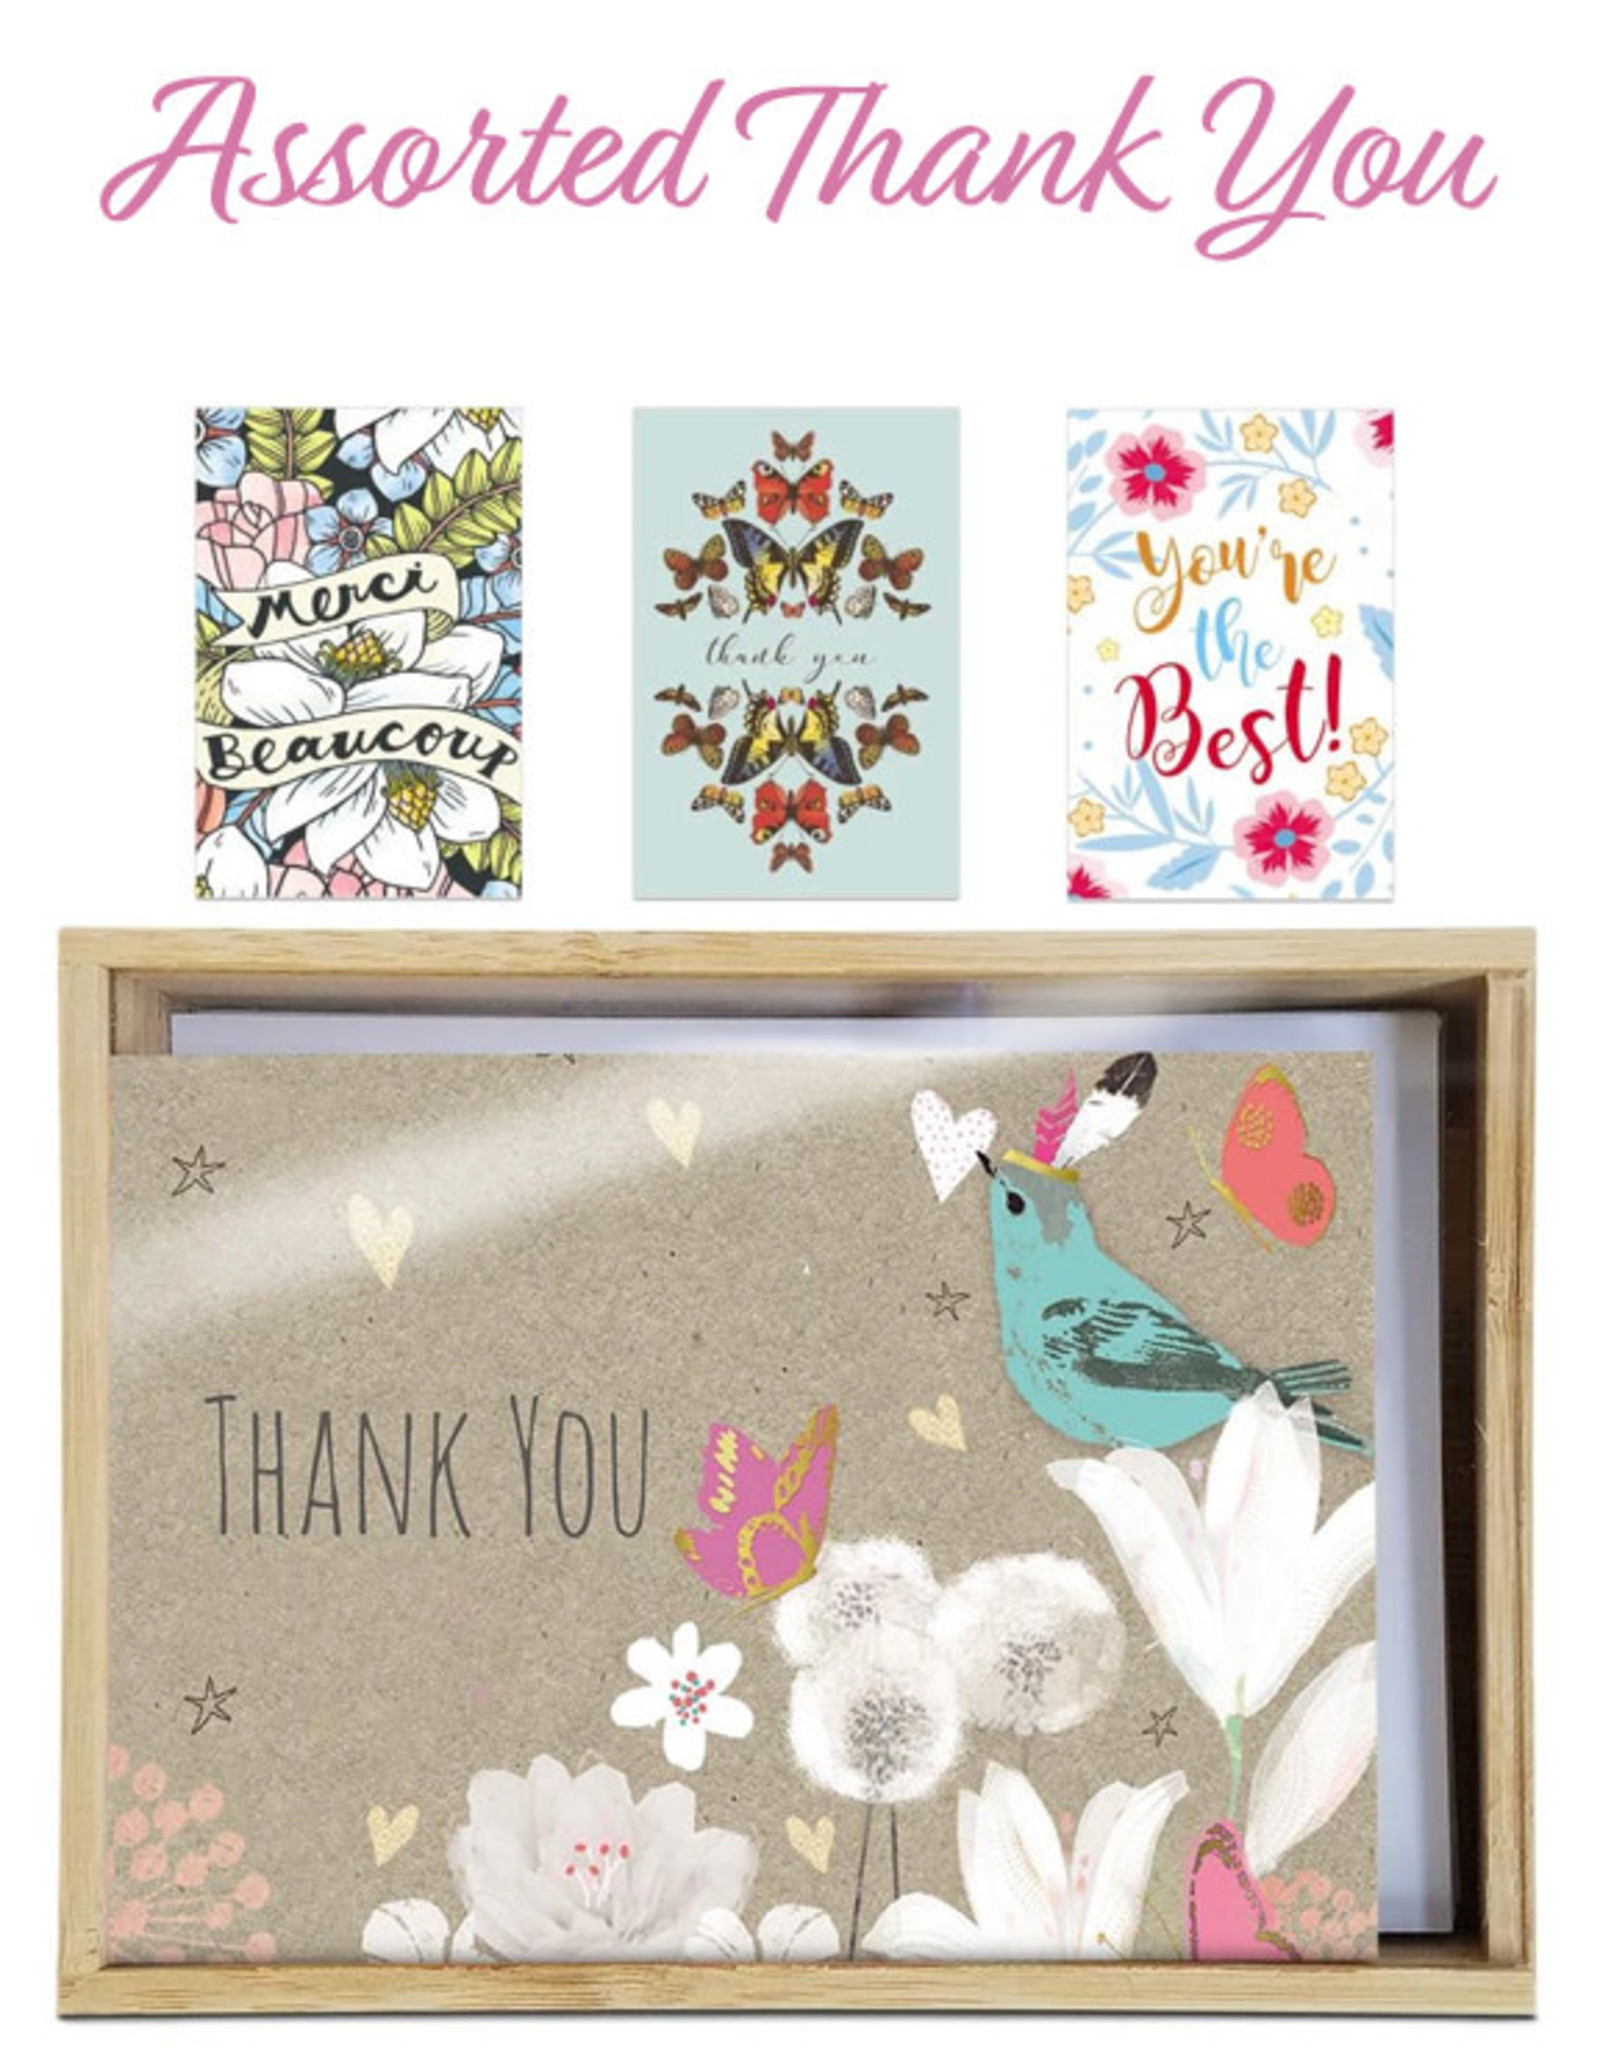 Tree-Free Cards Assorted Artful Thanks Note Cards